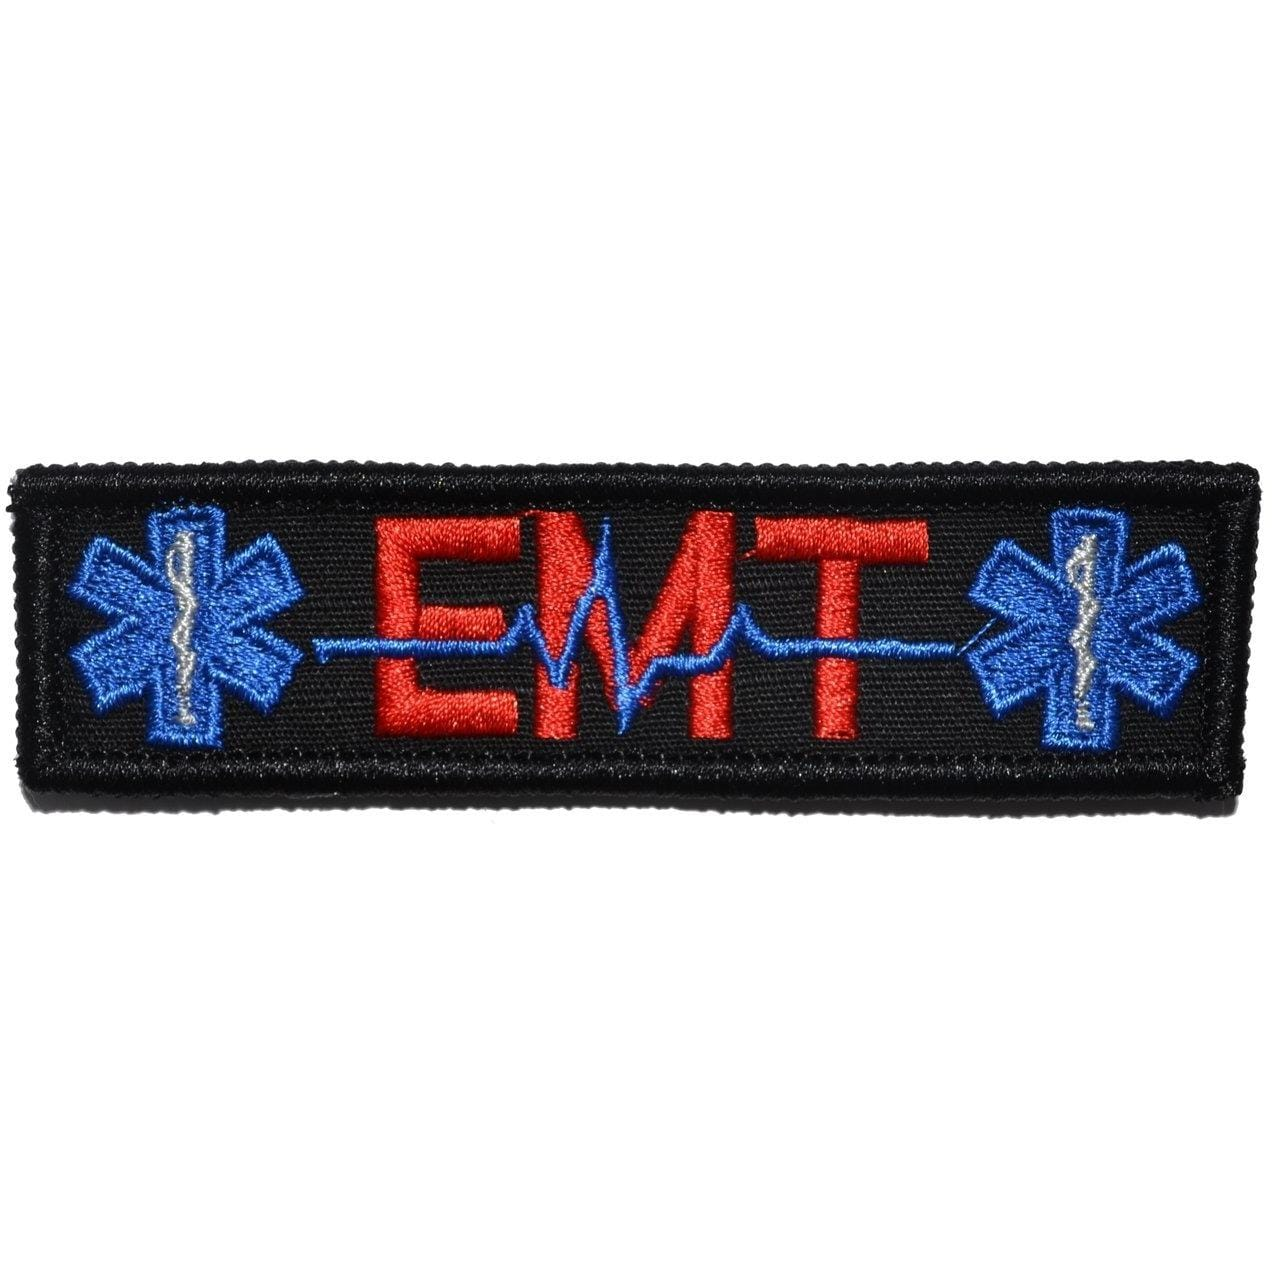 Tactical Gear Junkie Patches Black w/ Red EMT Heartbeat and Stars of Life - 1x3.75 Patch